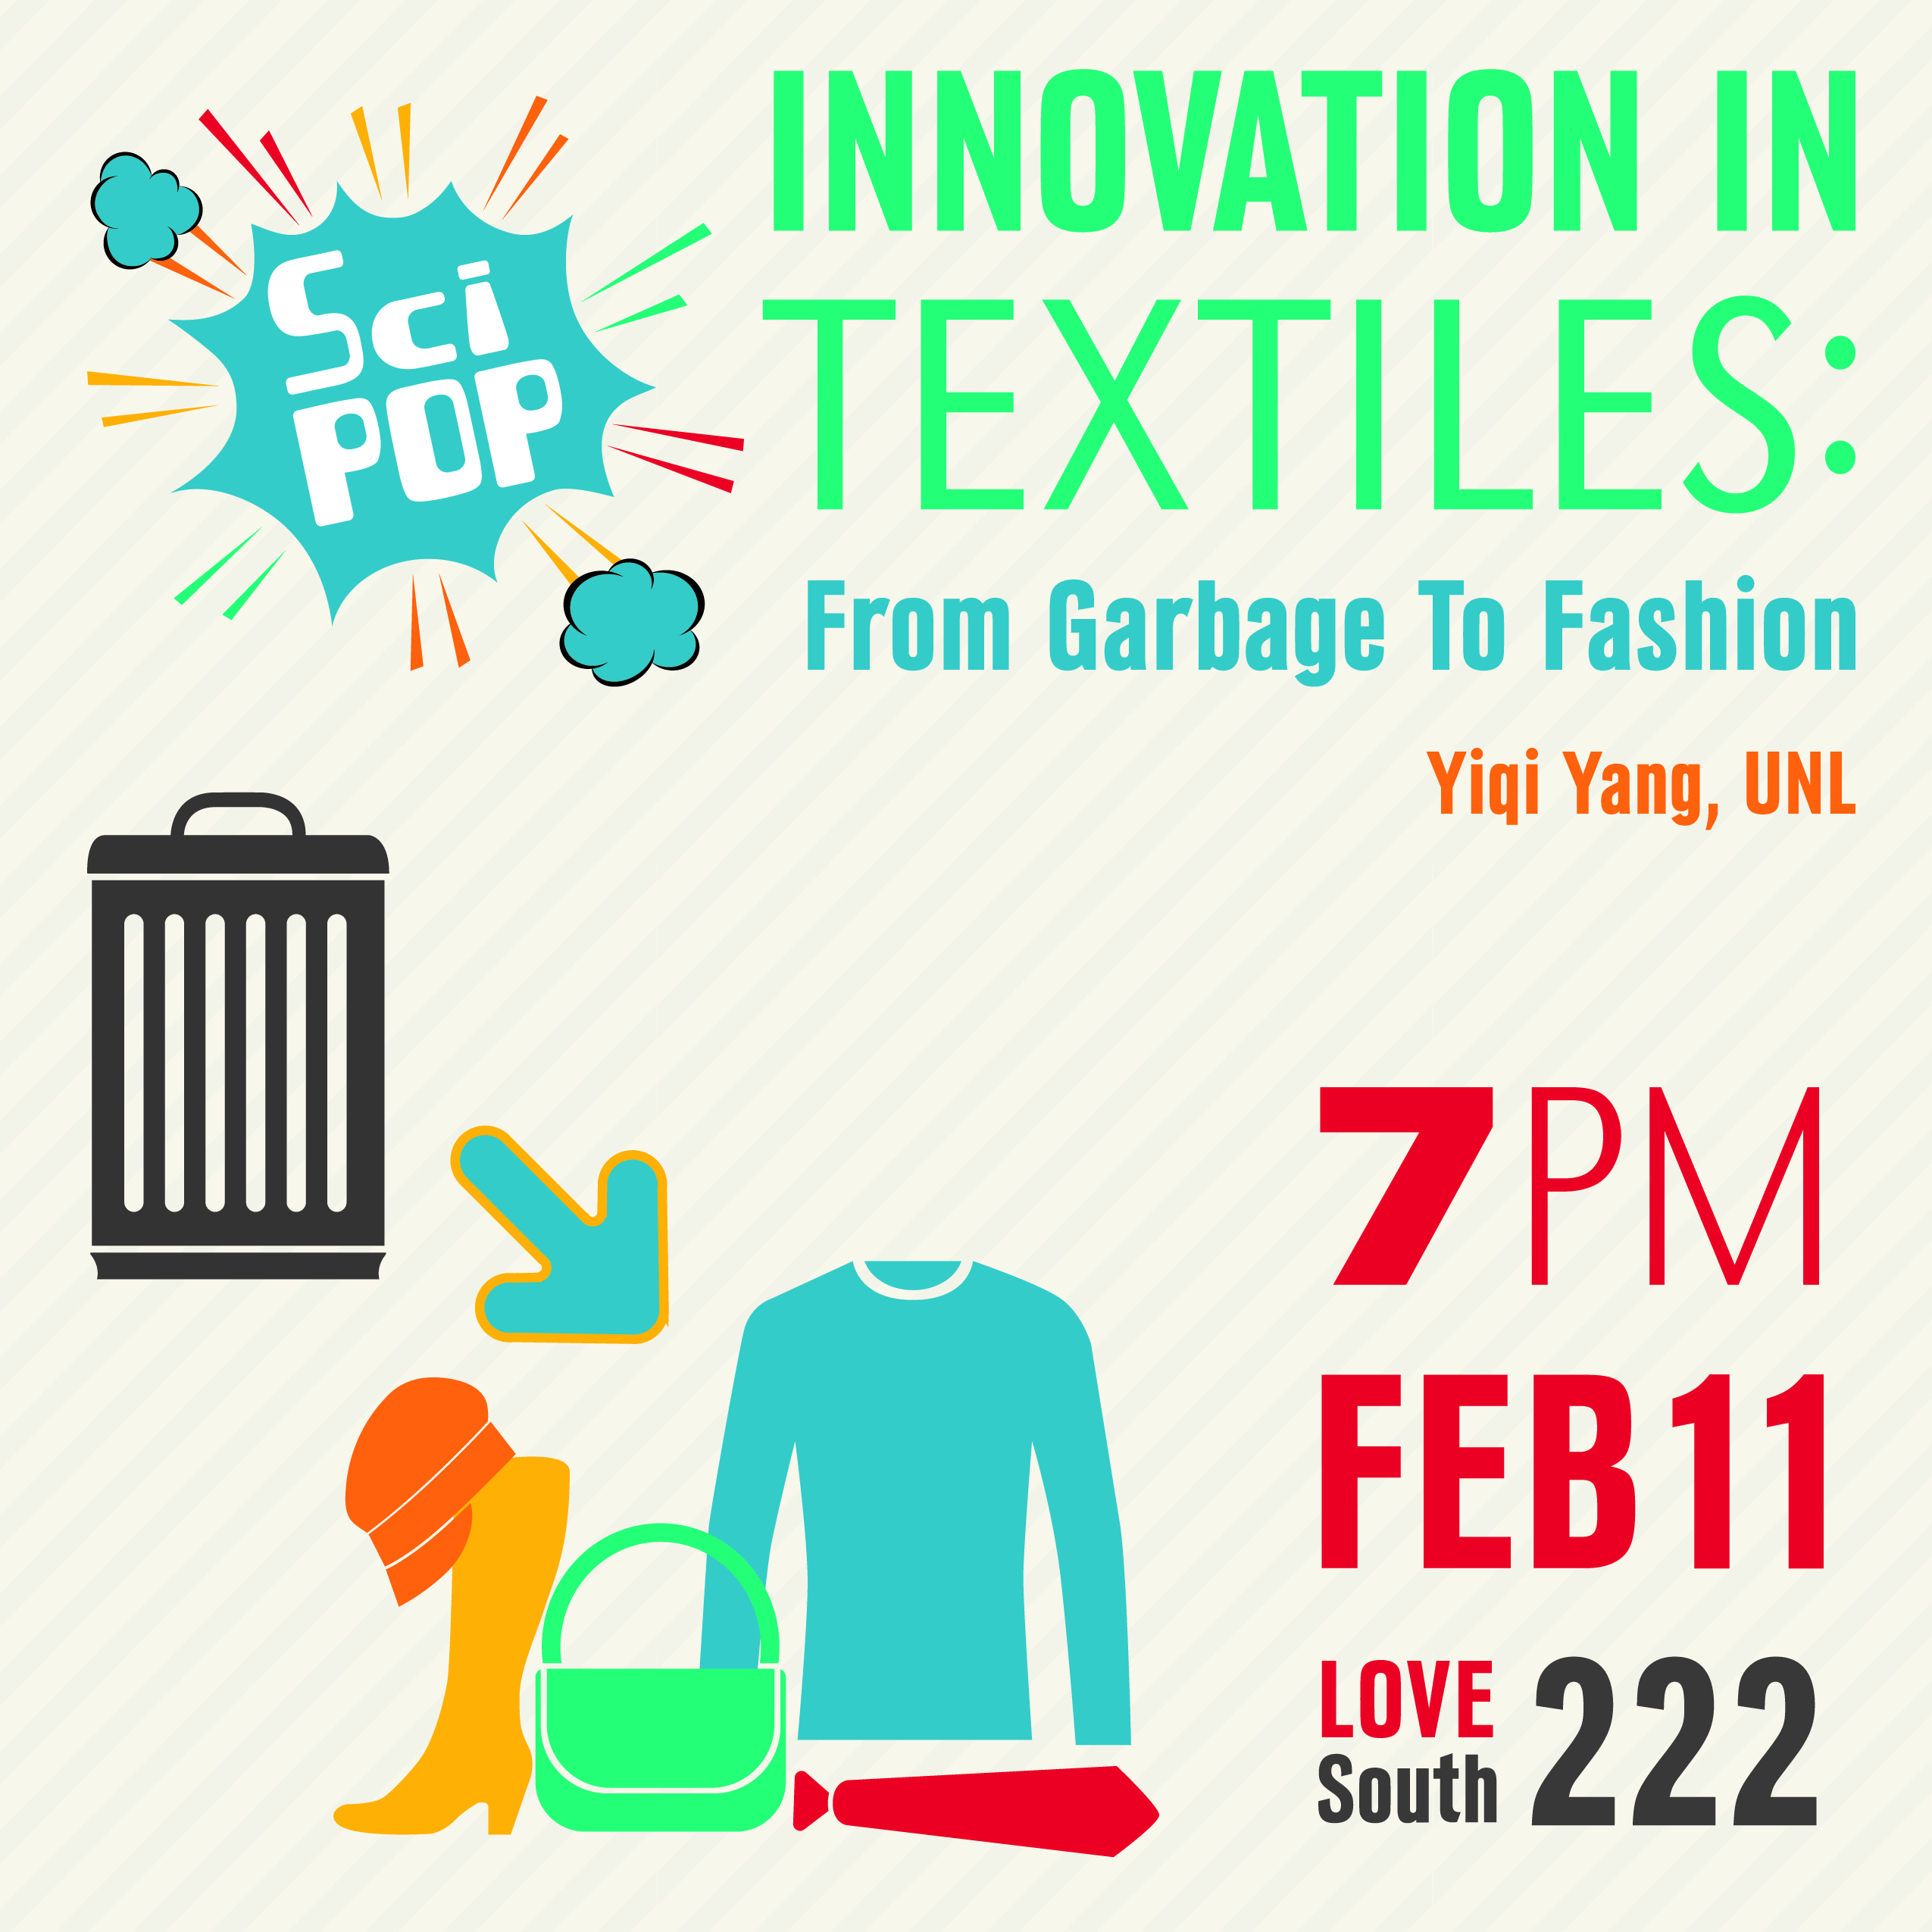 Innovations in Textiles Banner Image